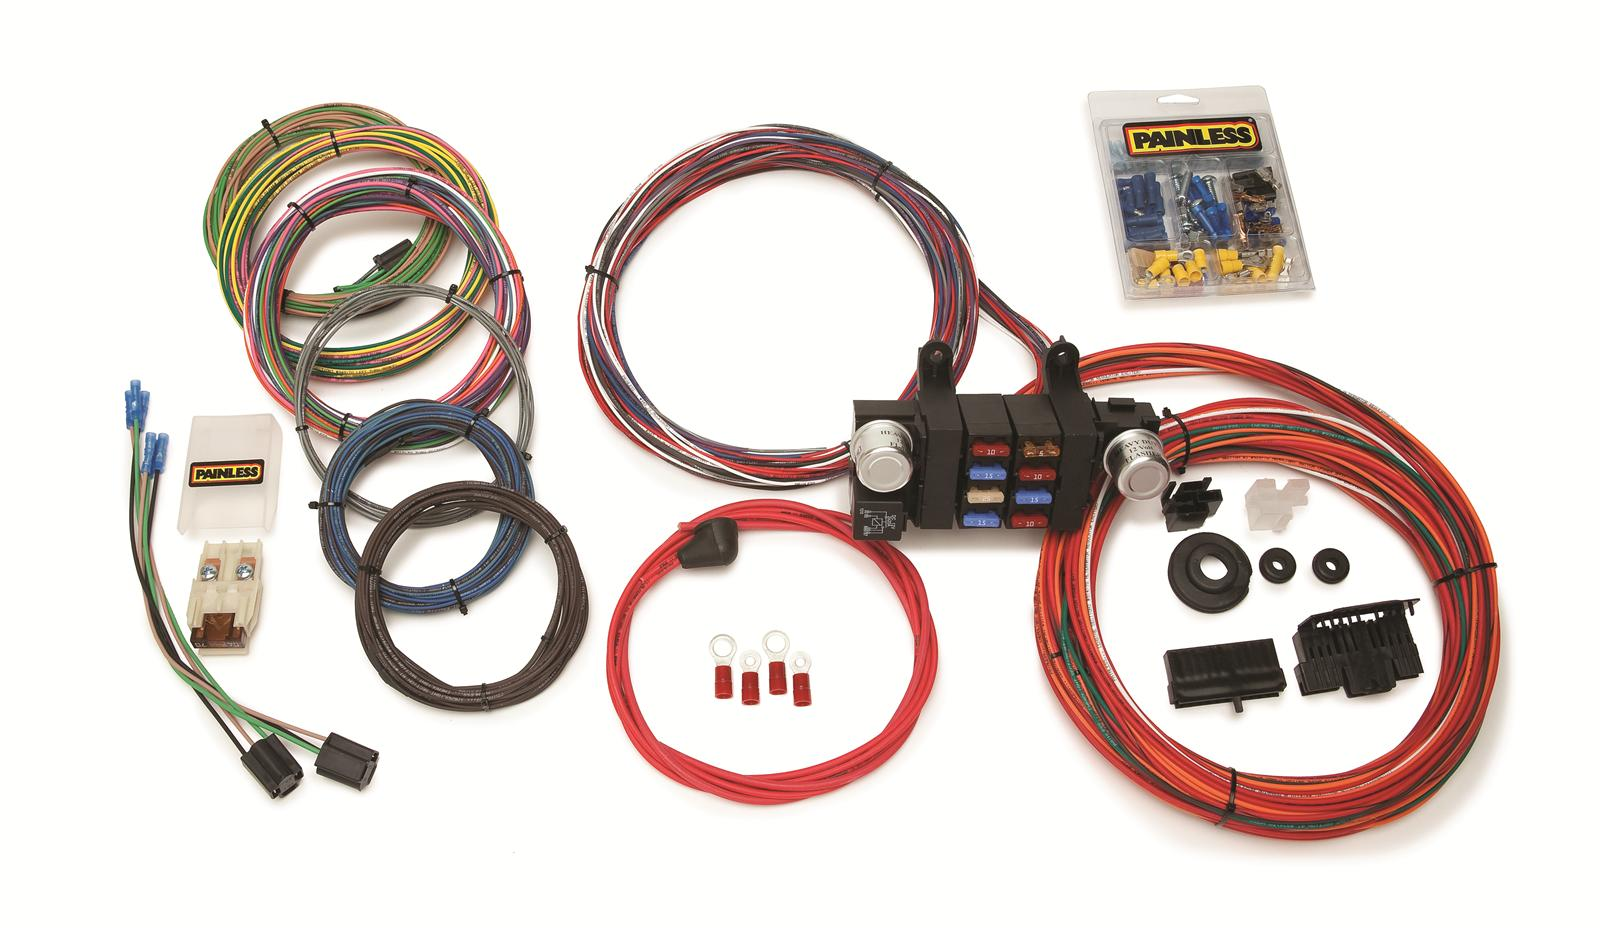 painless wiring harness diagram 1997 buick lesabre fuse performance 18 circuit modular chassis harnesses